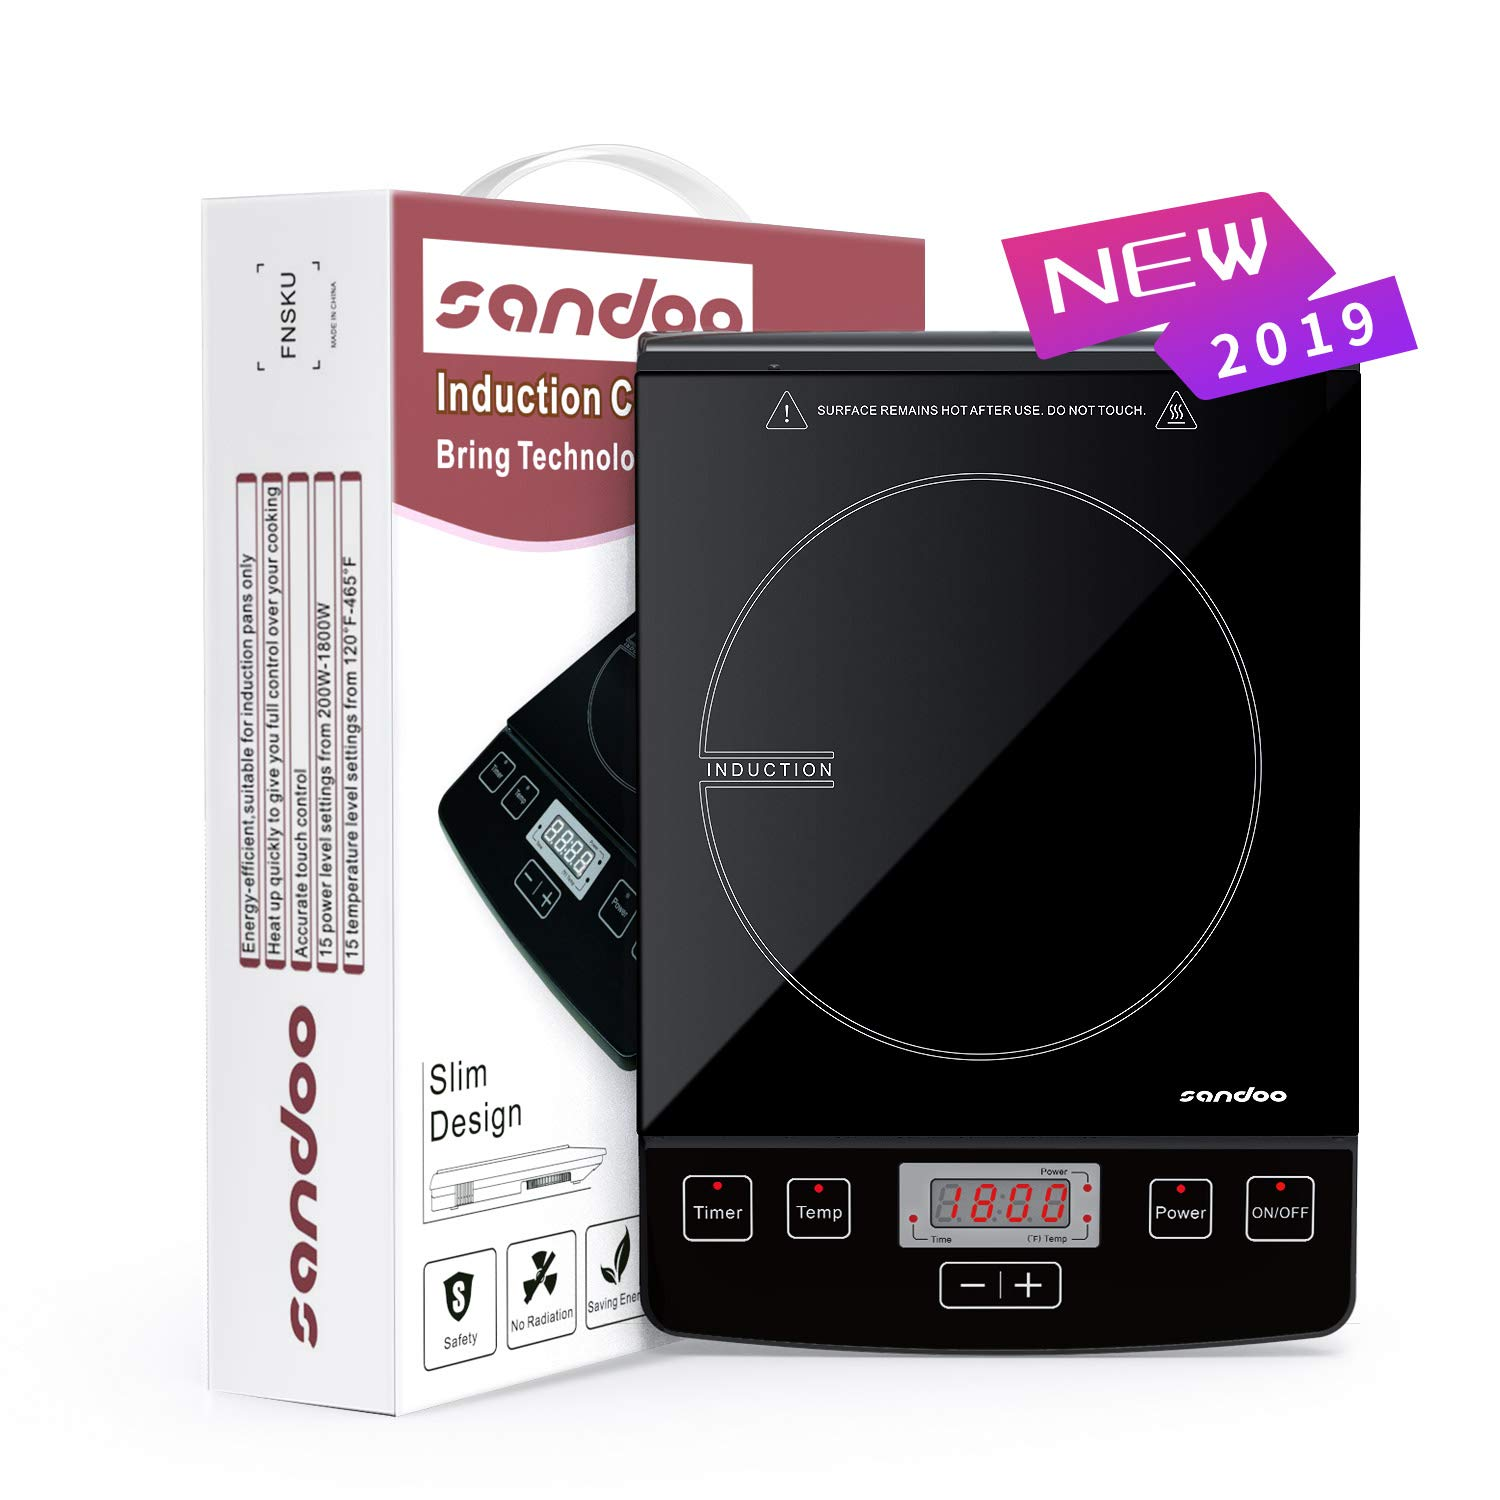 Sandoo HA1865 Induction Cooktop, 1800W Portable Light Weight Countertop Burner, Digital Electric Cooker Burner, with Timer 15 Temperature Power Setting, Suitable for Home Kitchen, RV, Apartment